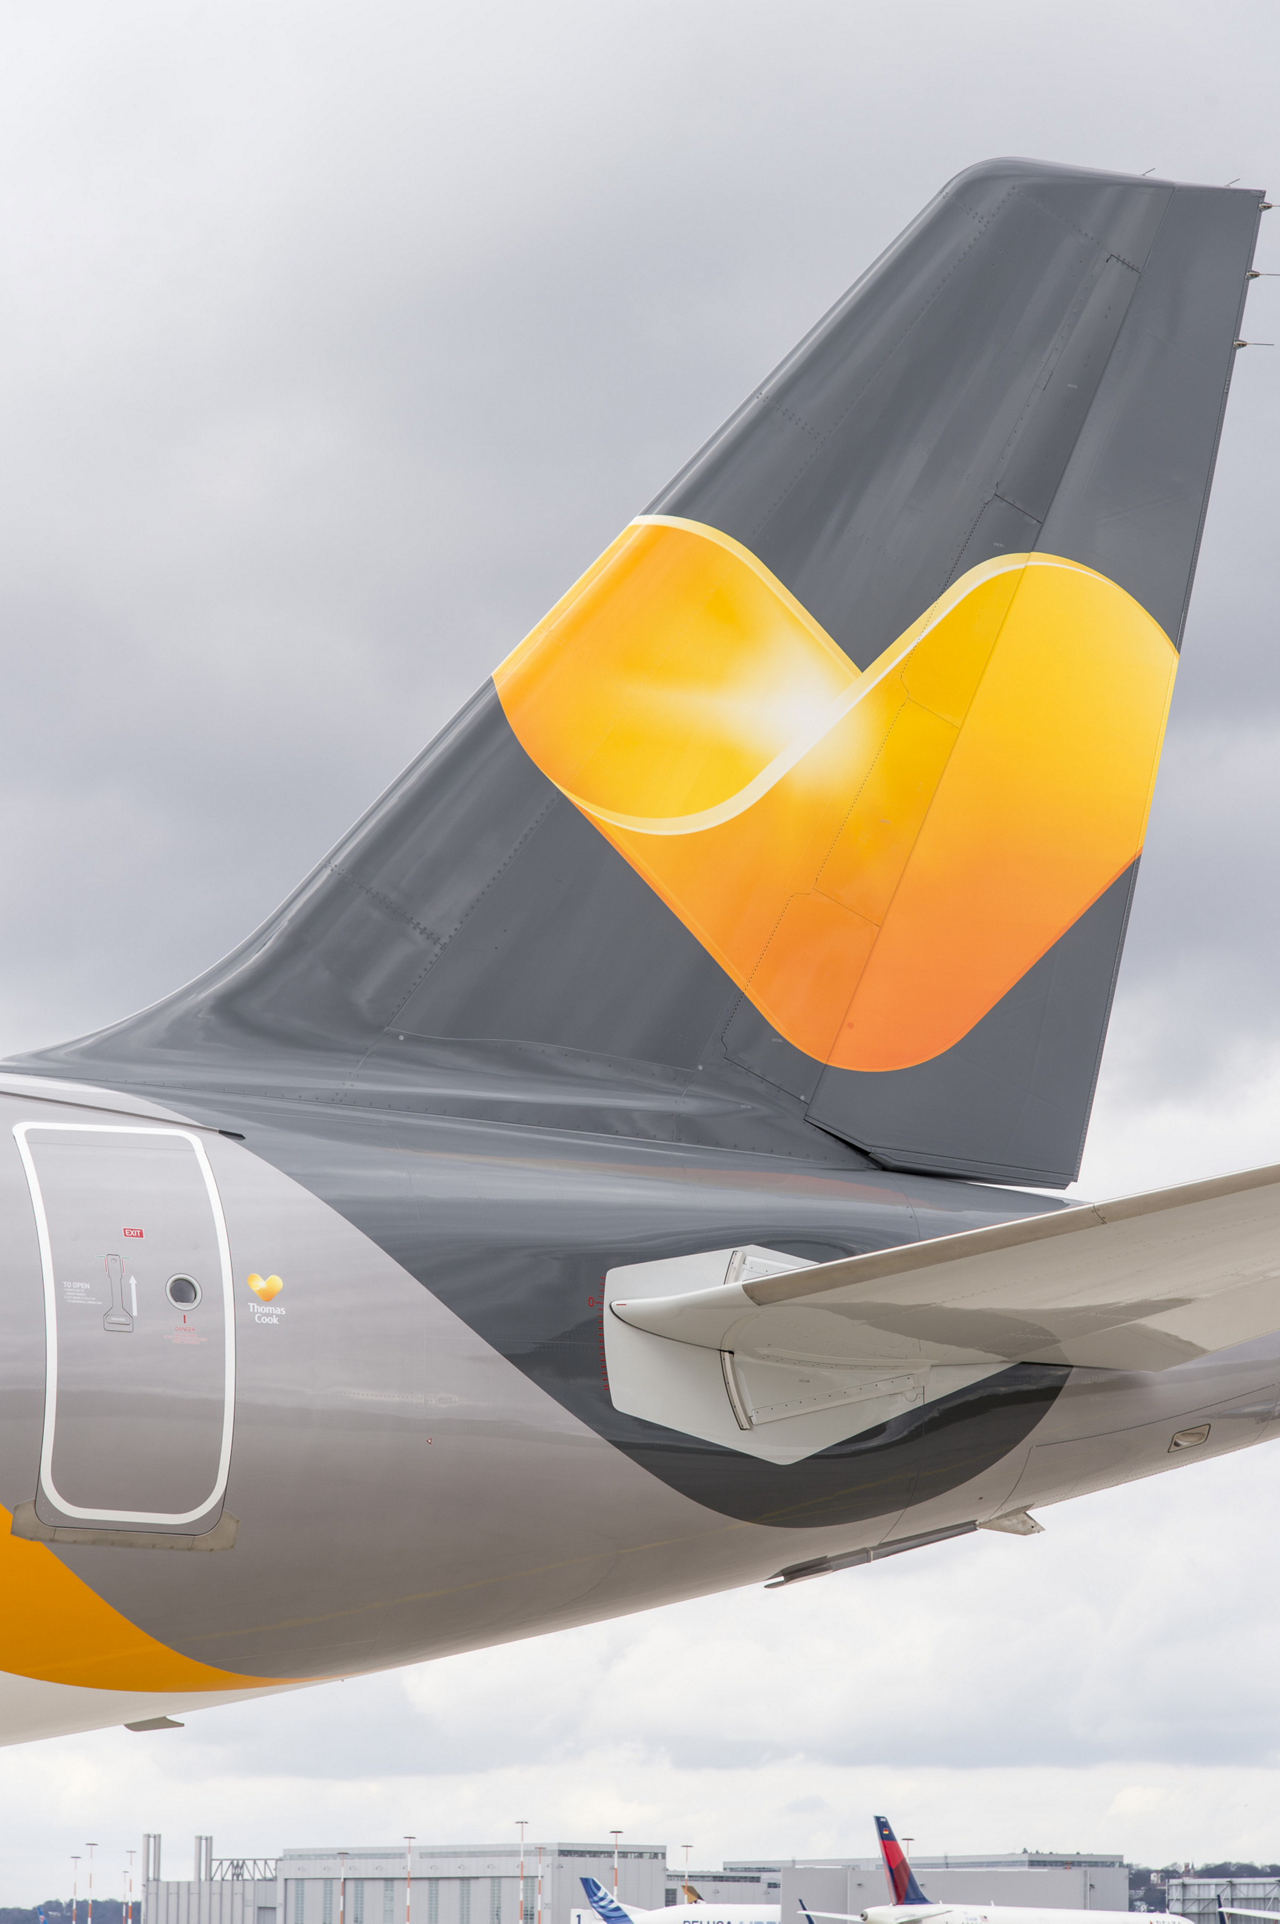 Airbus is developing a new method for applying complex, large-scale aircraft liveries through direct inkjet printing, which can reproduce any design faster and more efficiently than traditional painting processes